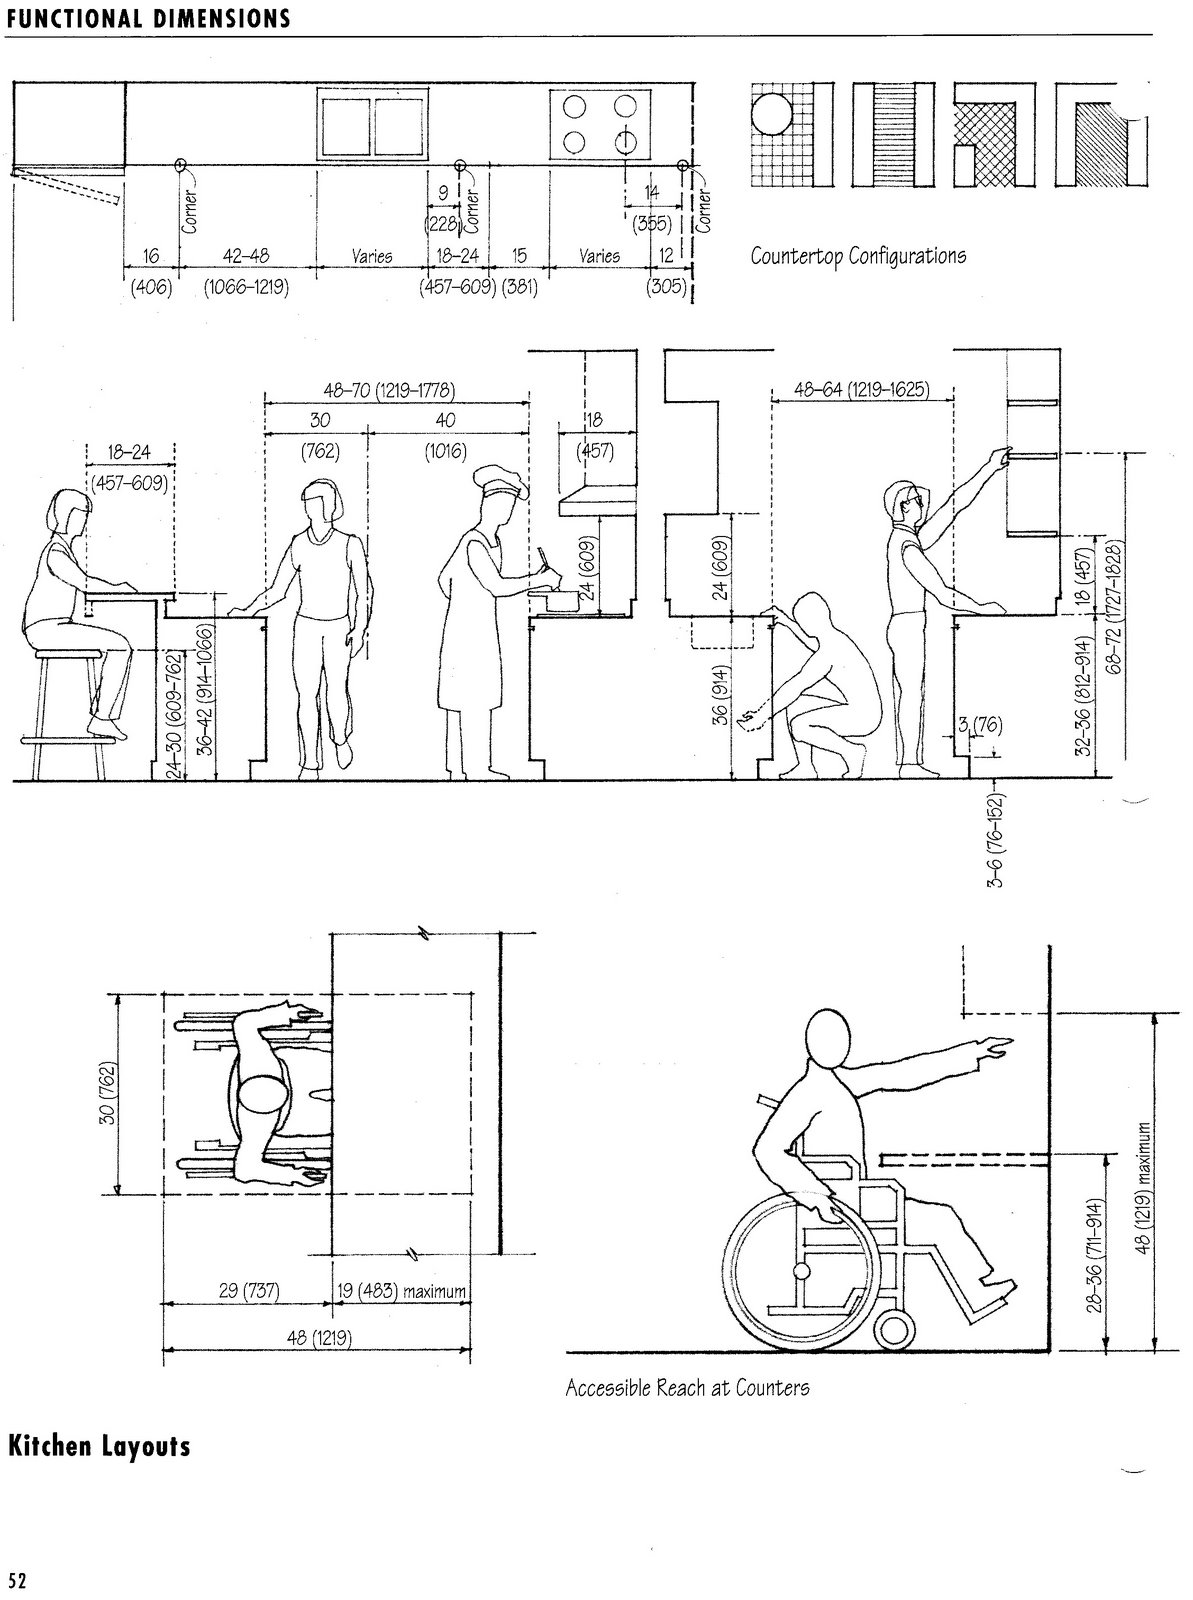 Functional Dimensions Kitchen Layout Standard How Do A